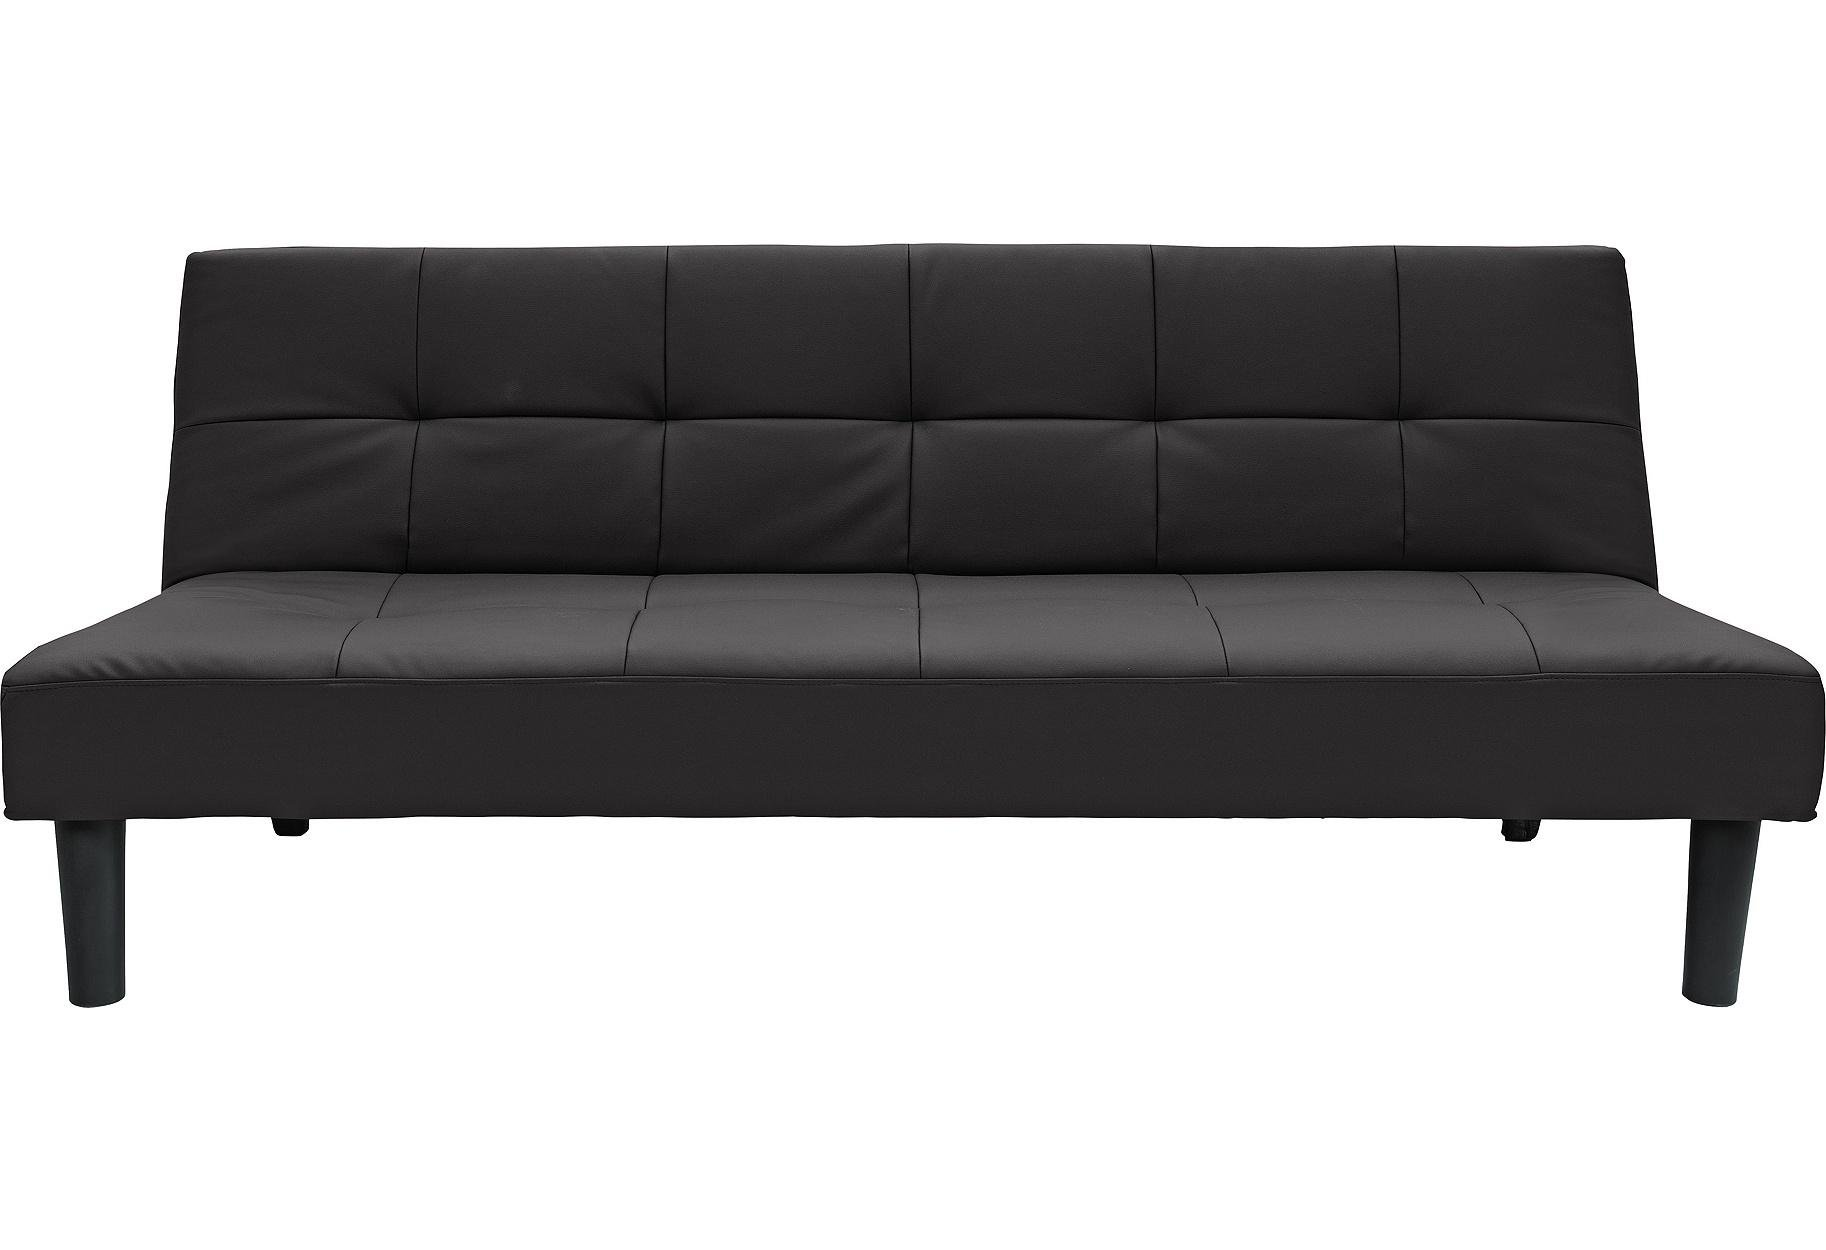 fold out chair bed argos all purpose hydraulic recline barber sofa beds futons settees home patsy 2 seater clic clac black